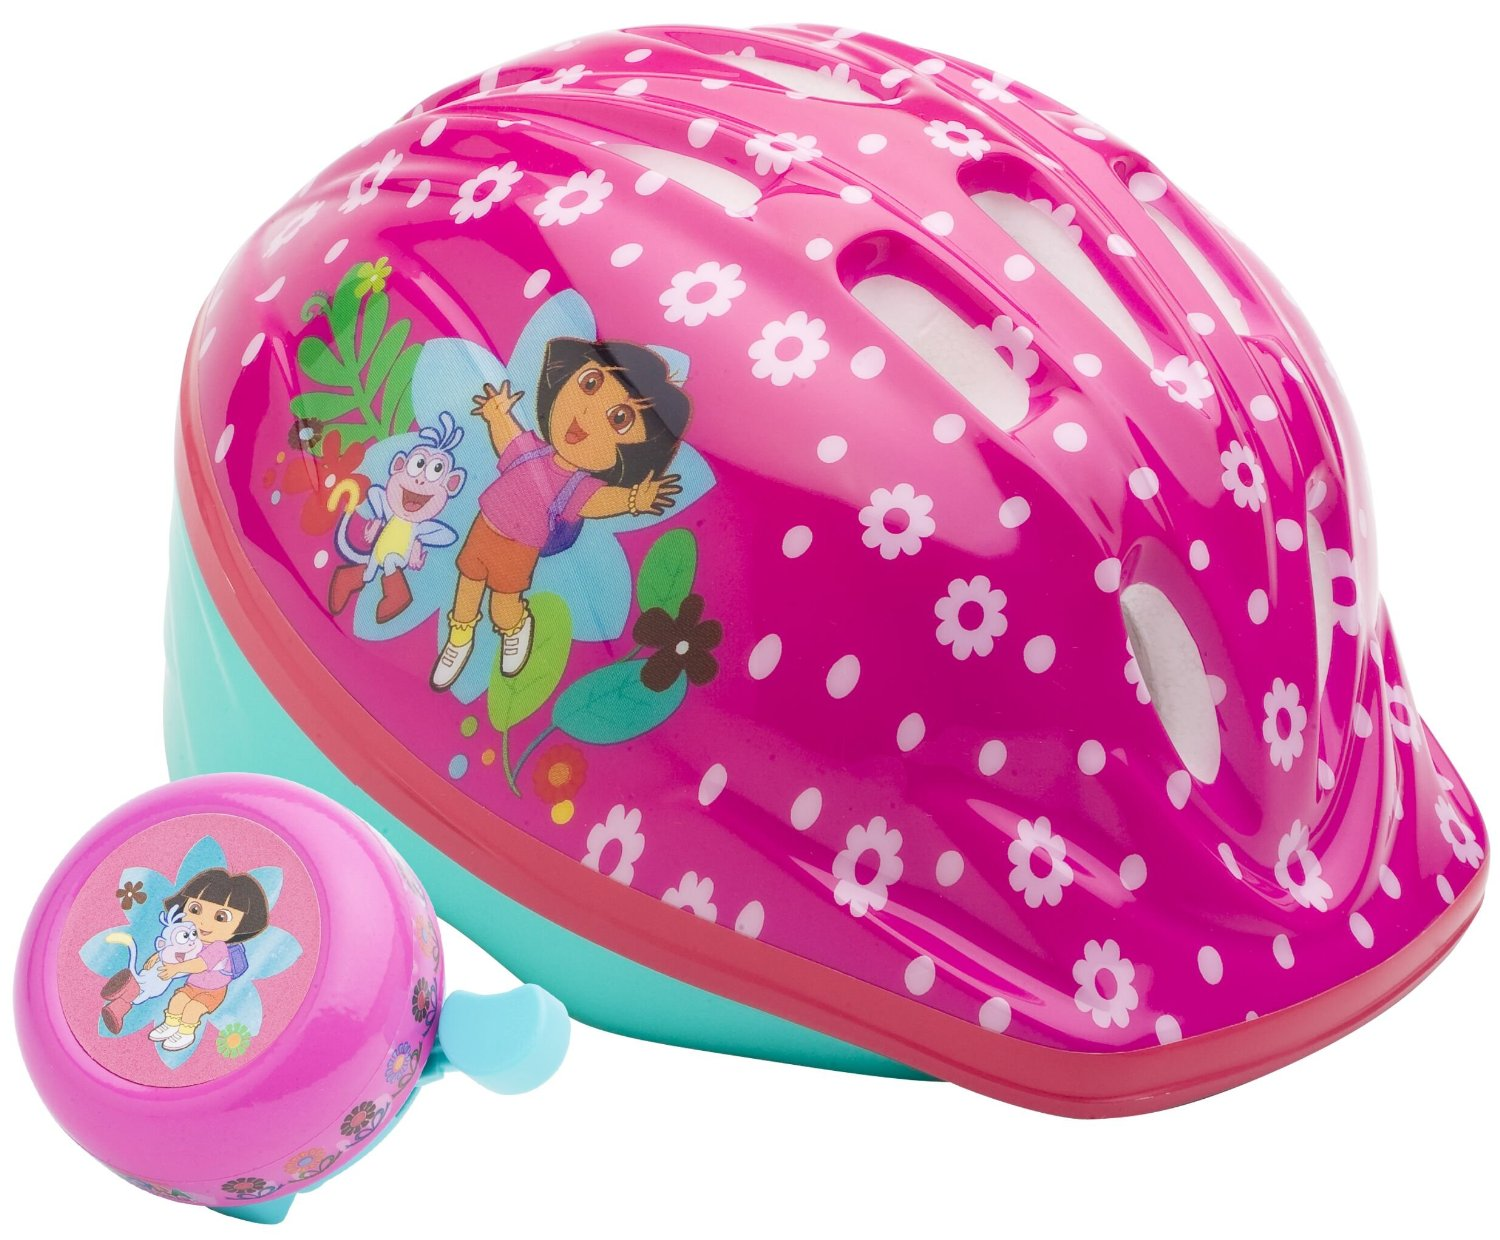 Nickelodeon Bicycle Helmets